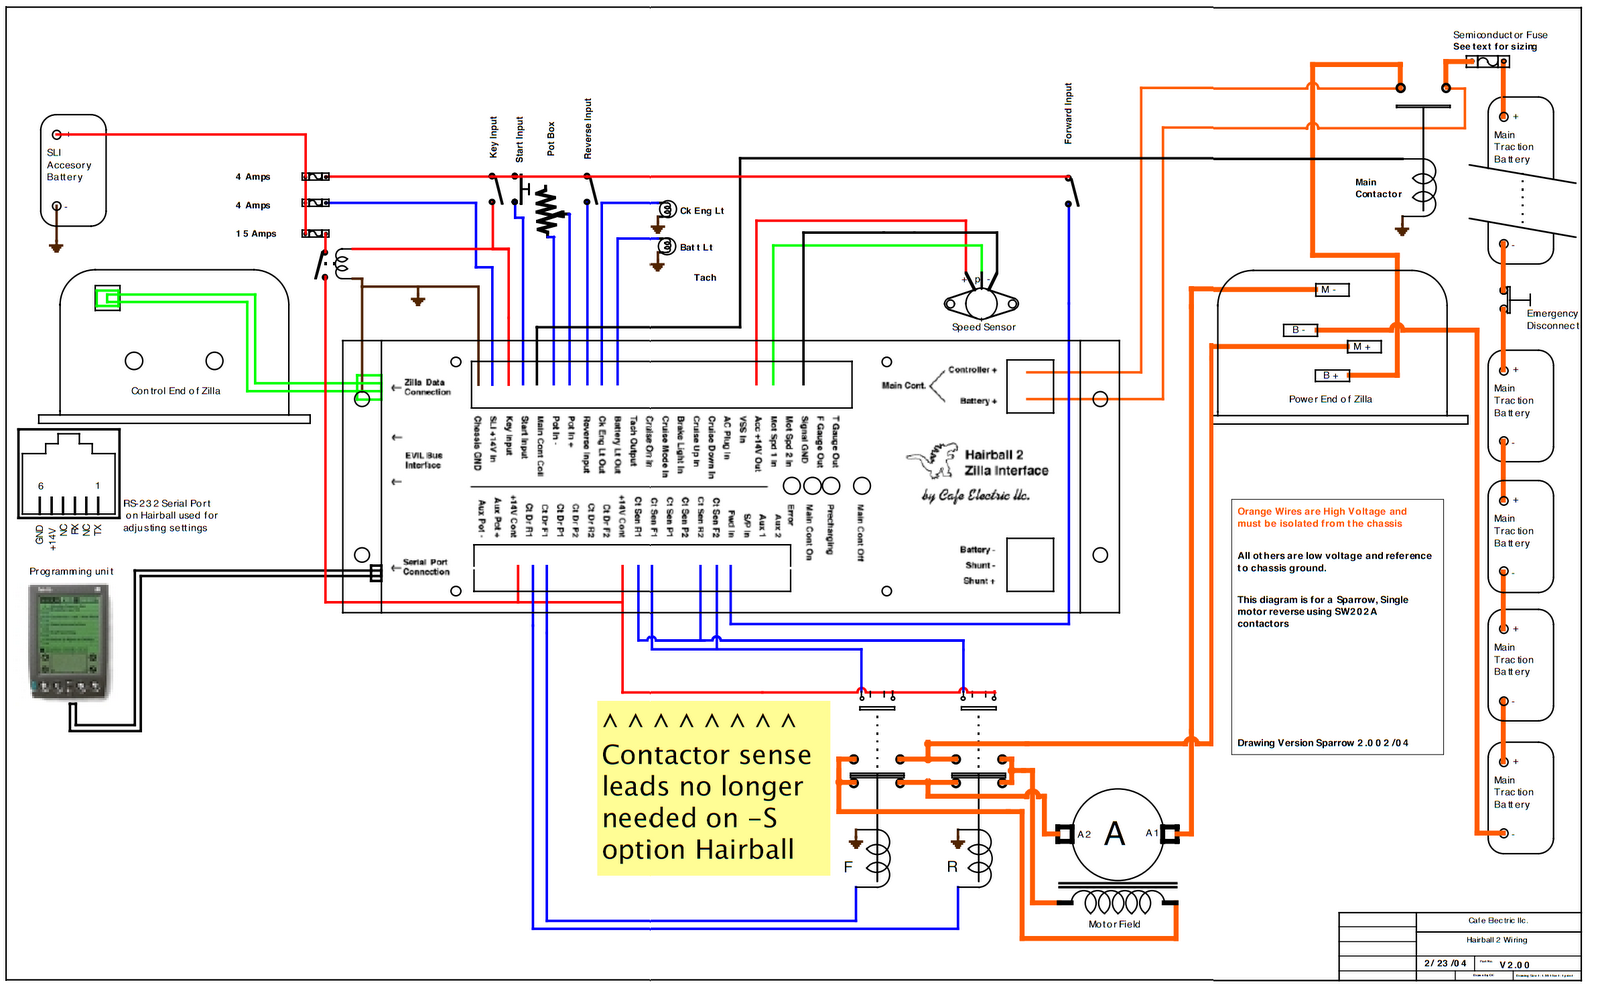 Super Wiring Diagram For Electric Scooters Wiring House Wiring Ranpur Mohammedshrine Wiring Digital Resources Ranpurmohammedshrineorg